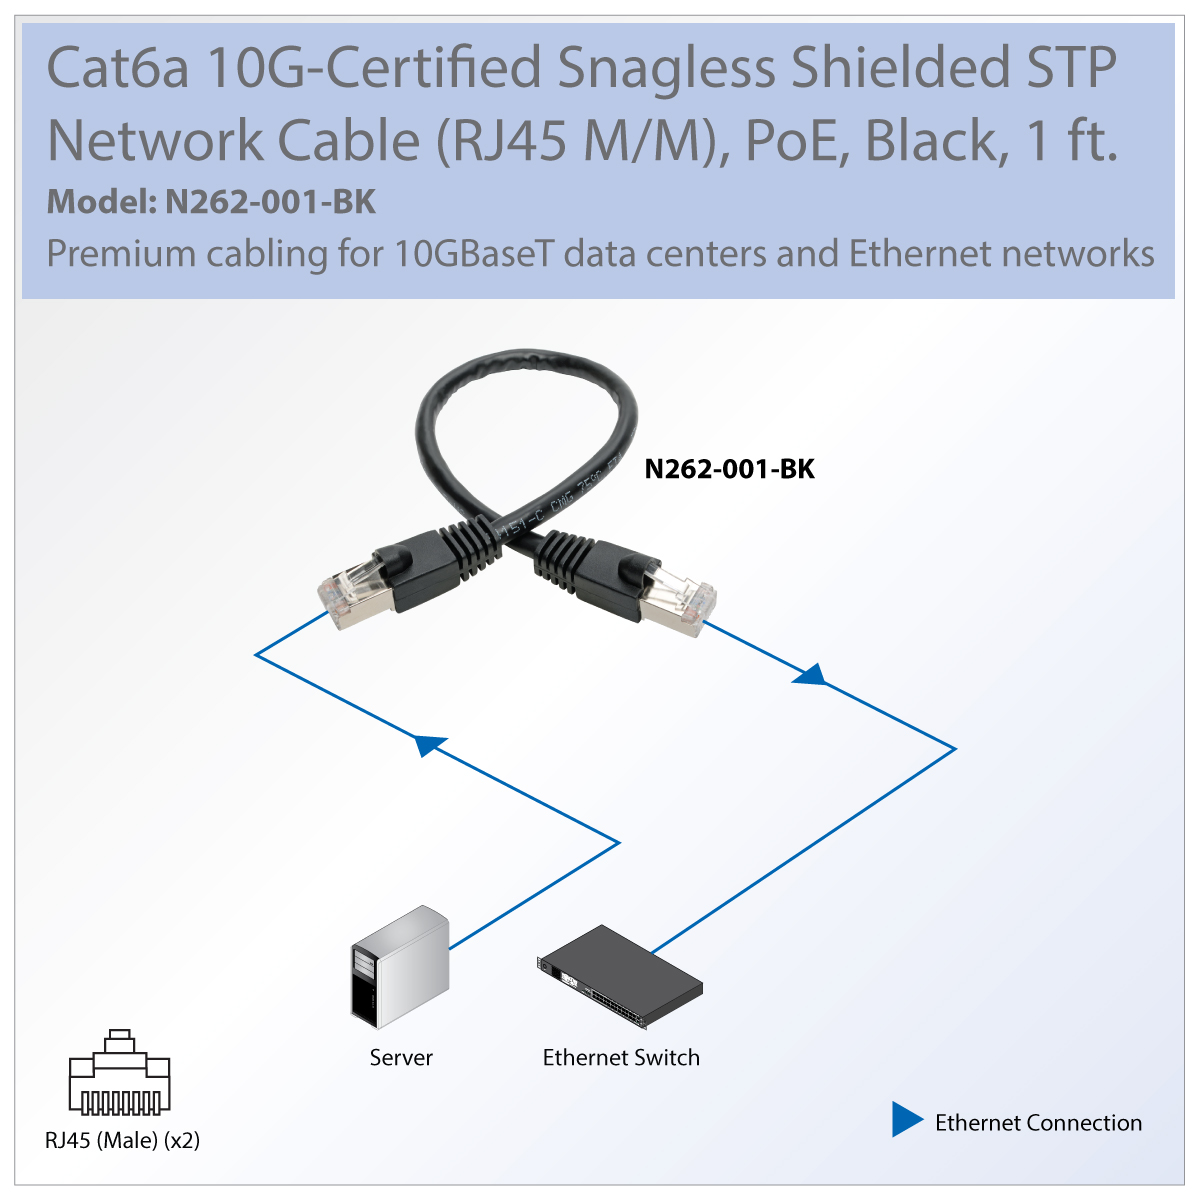 Tripp Lite Cat6a Snagless Shielded Stp Patch Cable 10g Poe Black M Wire Diagram Transmits Data Voice And Video Signals In High Density 10gbaset Networks